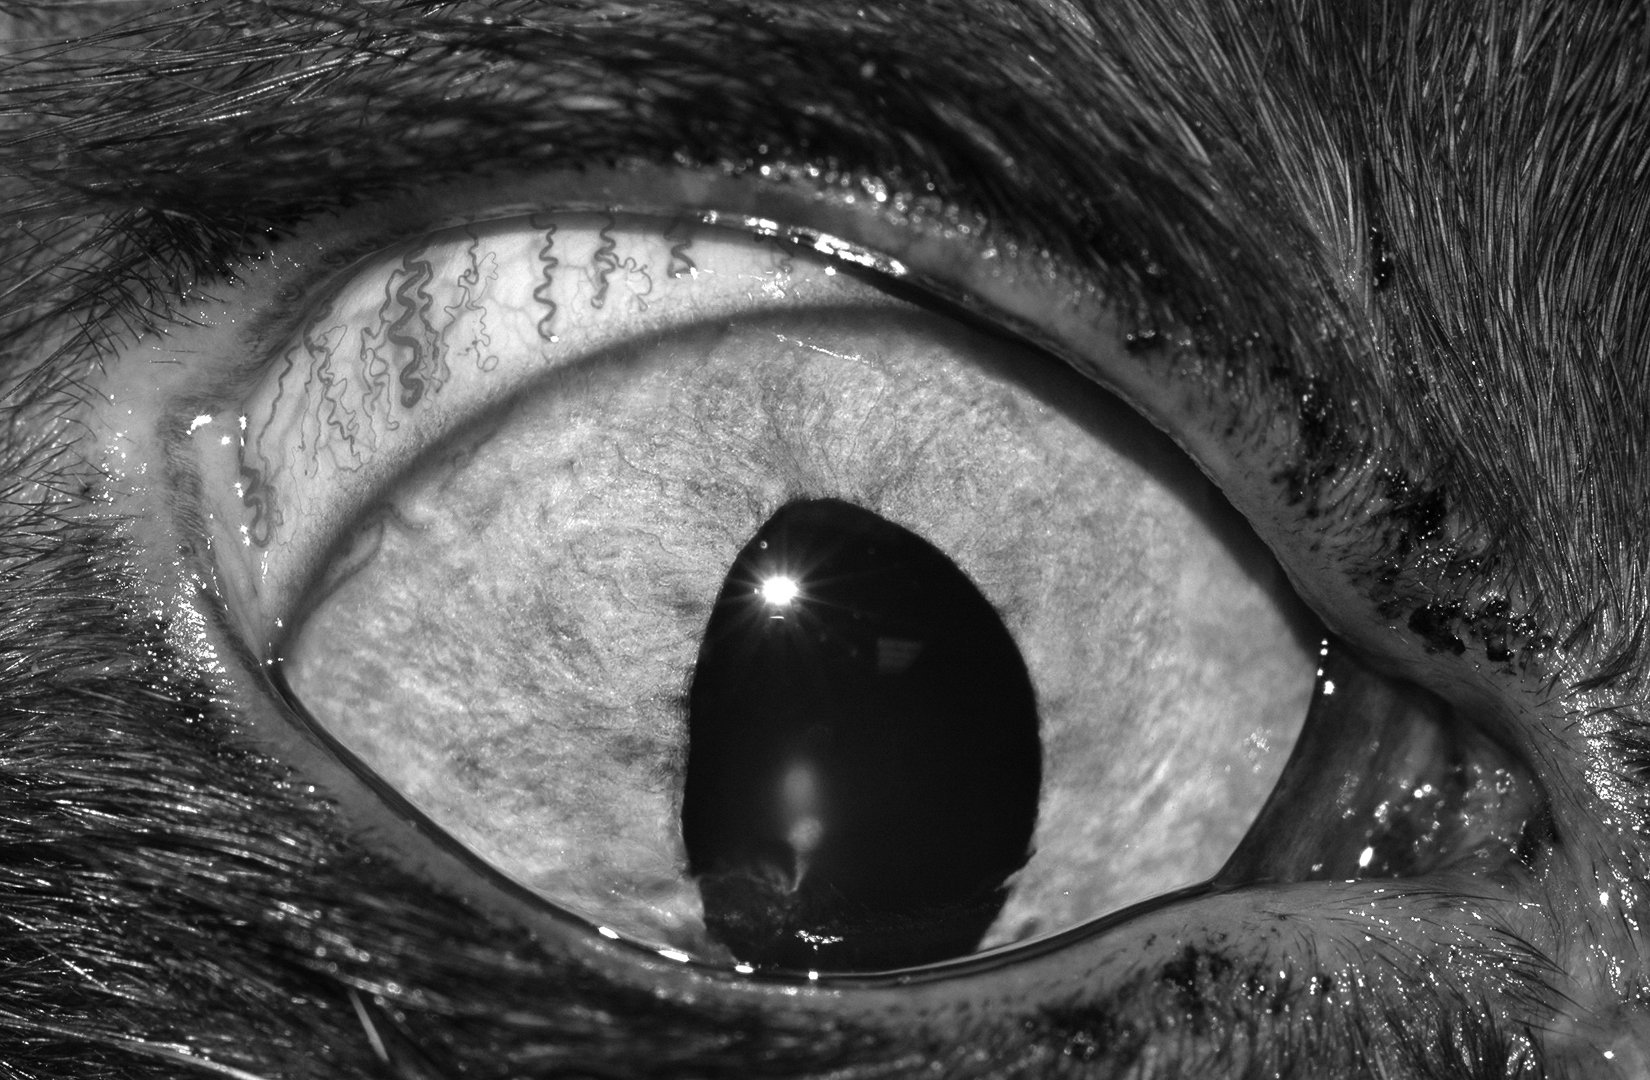 cat with glaucoma